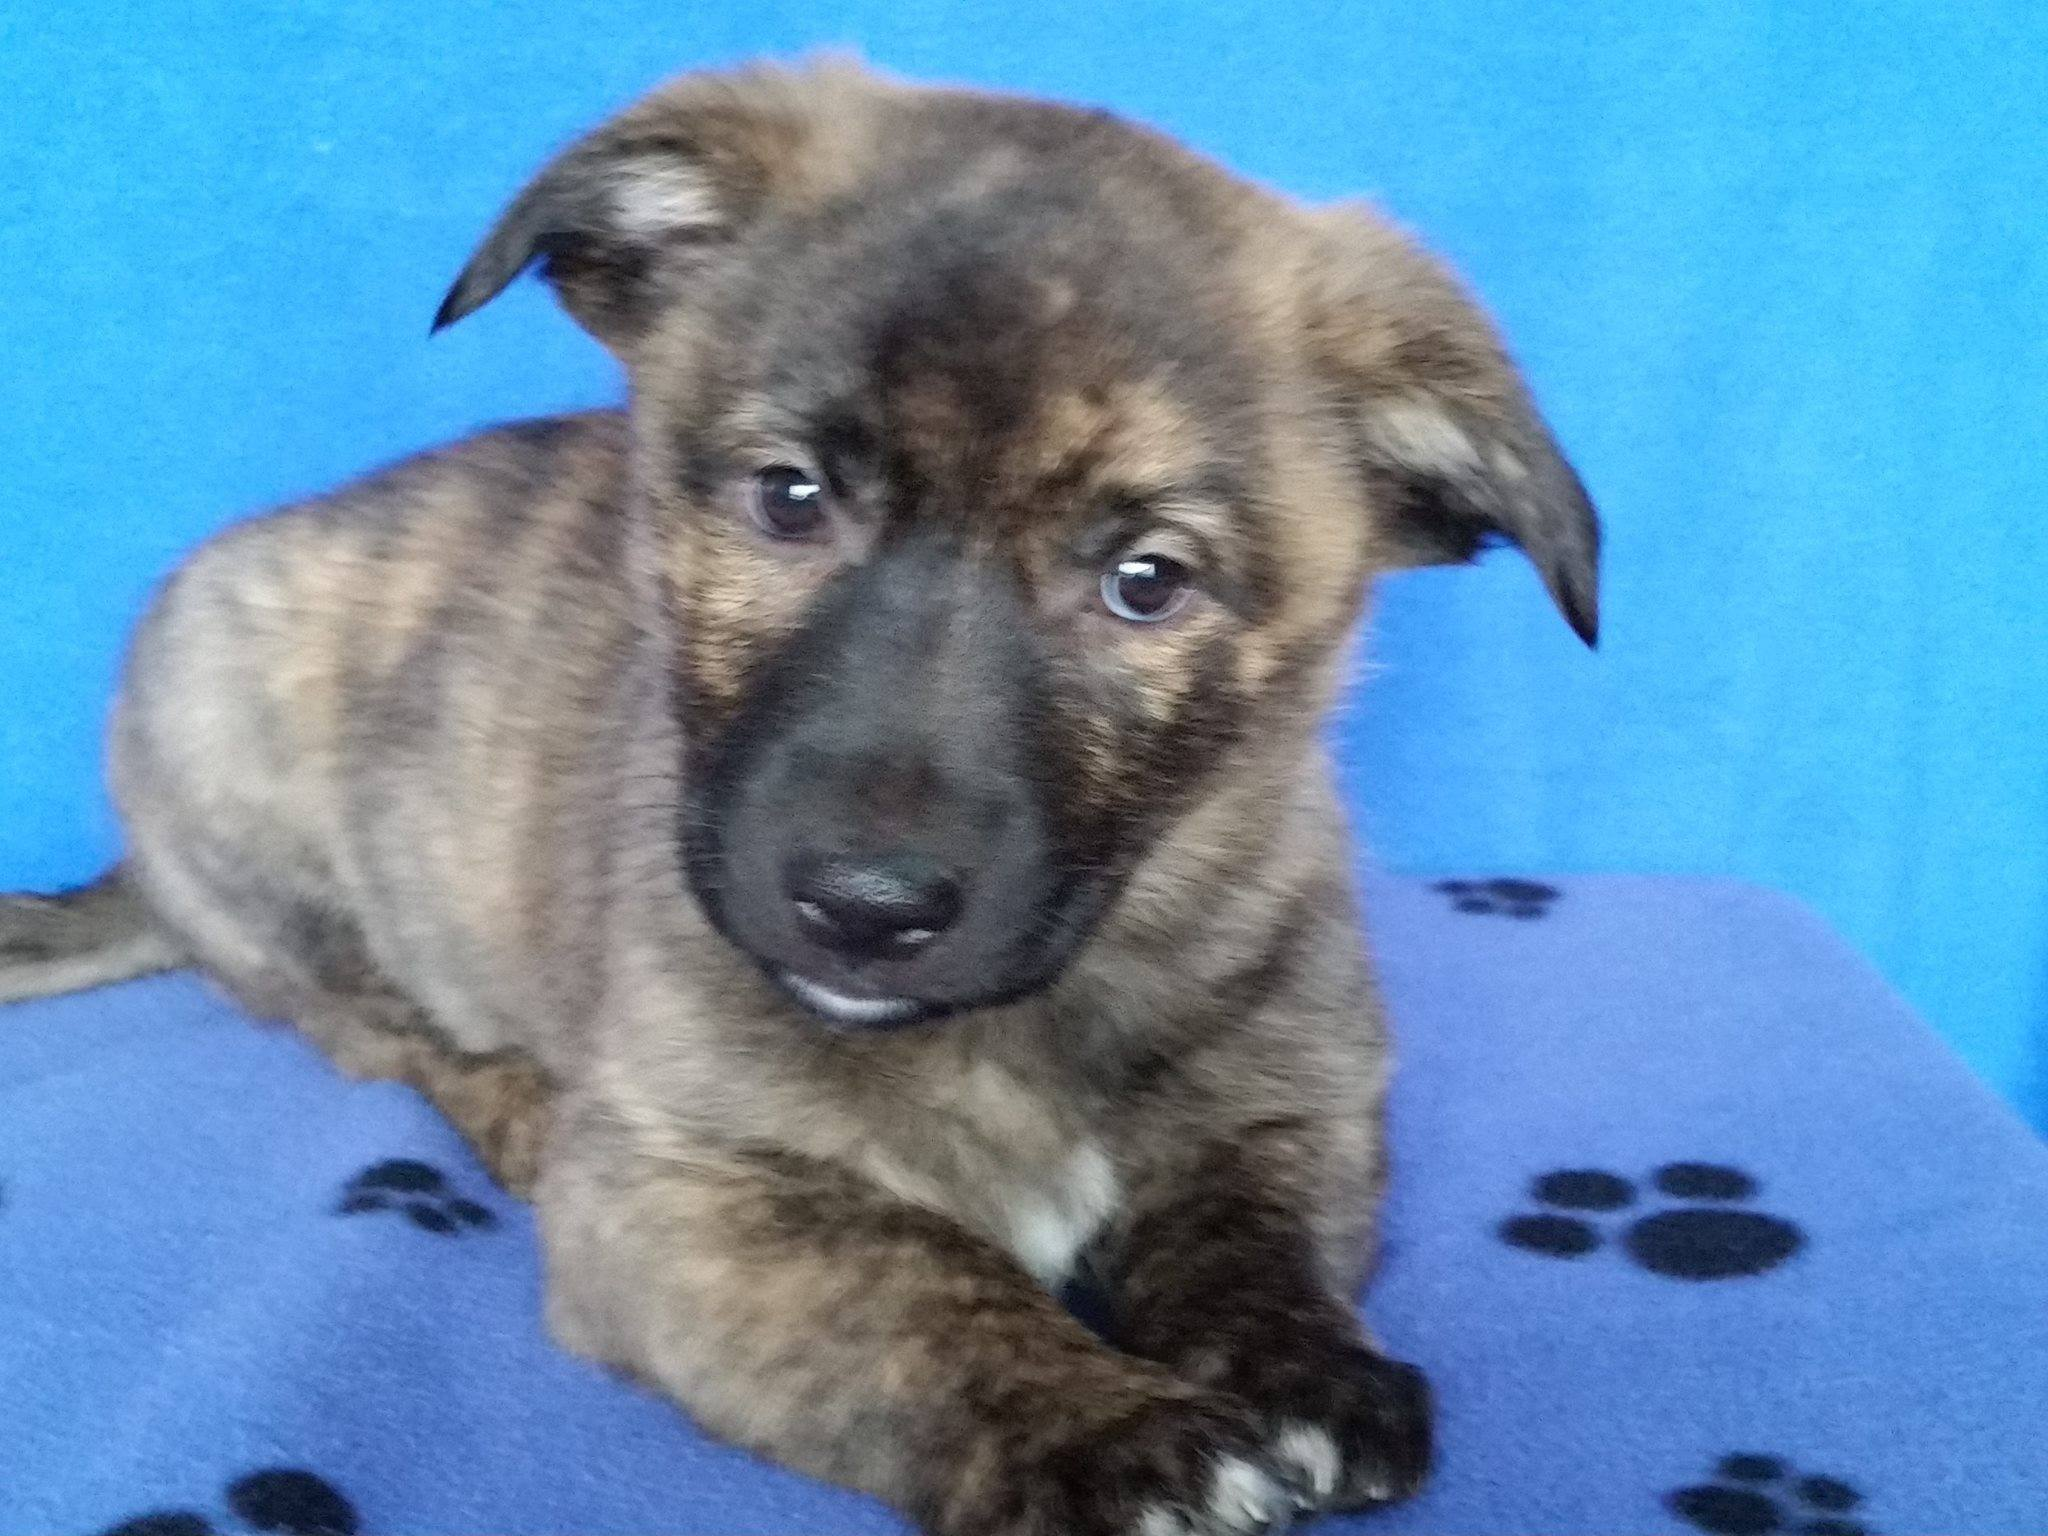 Angus is a male pup from YARN's Cow Litter.